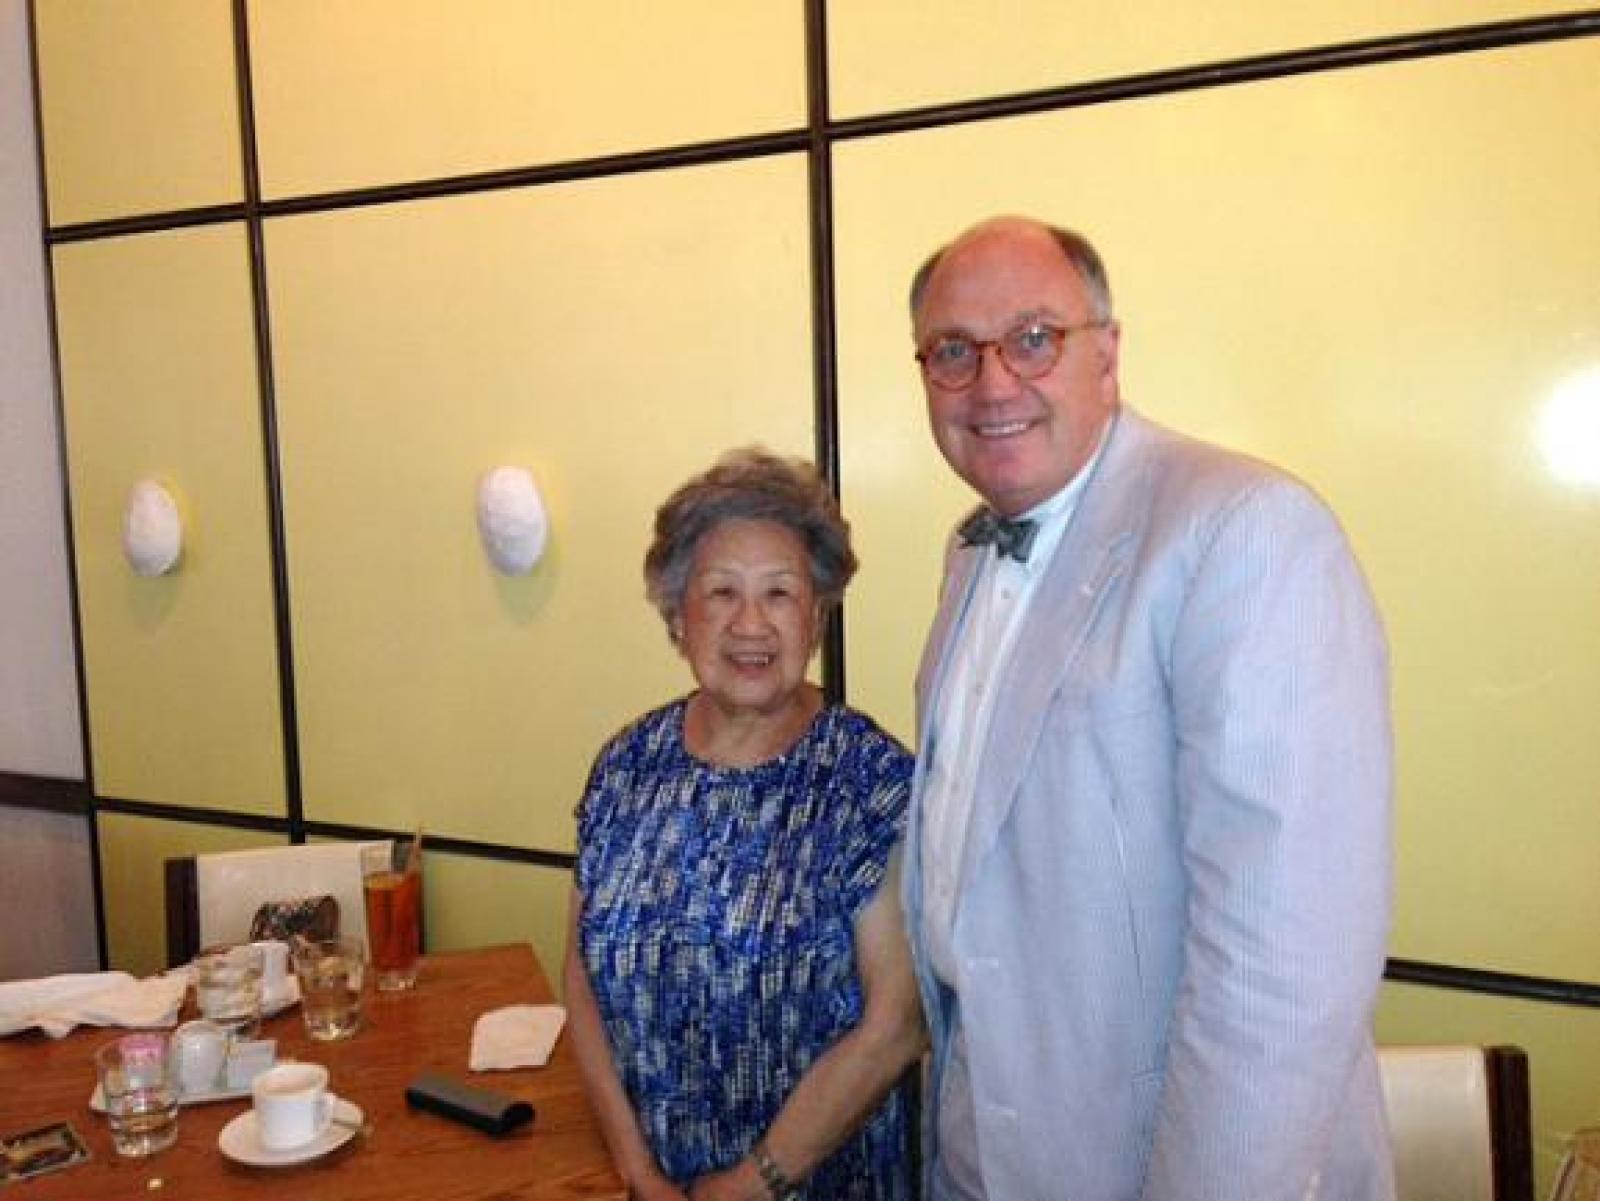 Ms. Chen and Dean for Medical Education Stephen Ray Mitchell on a recent visit.